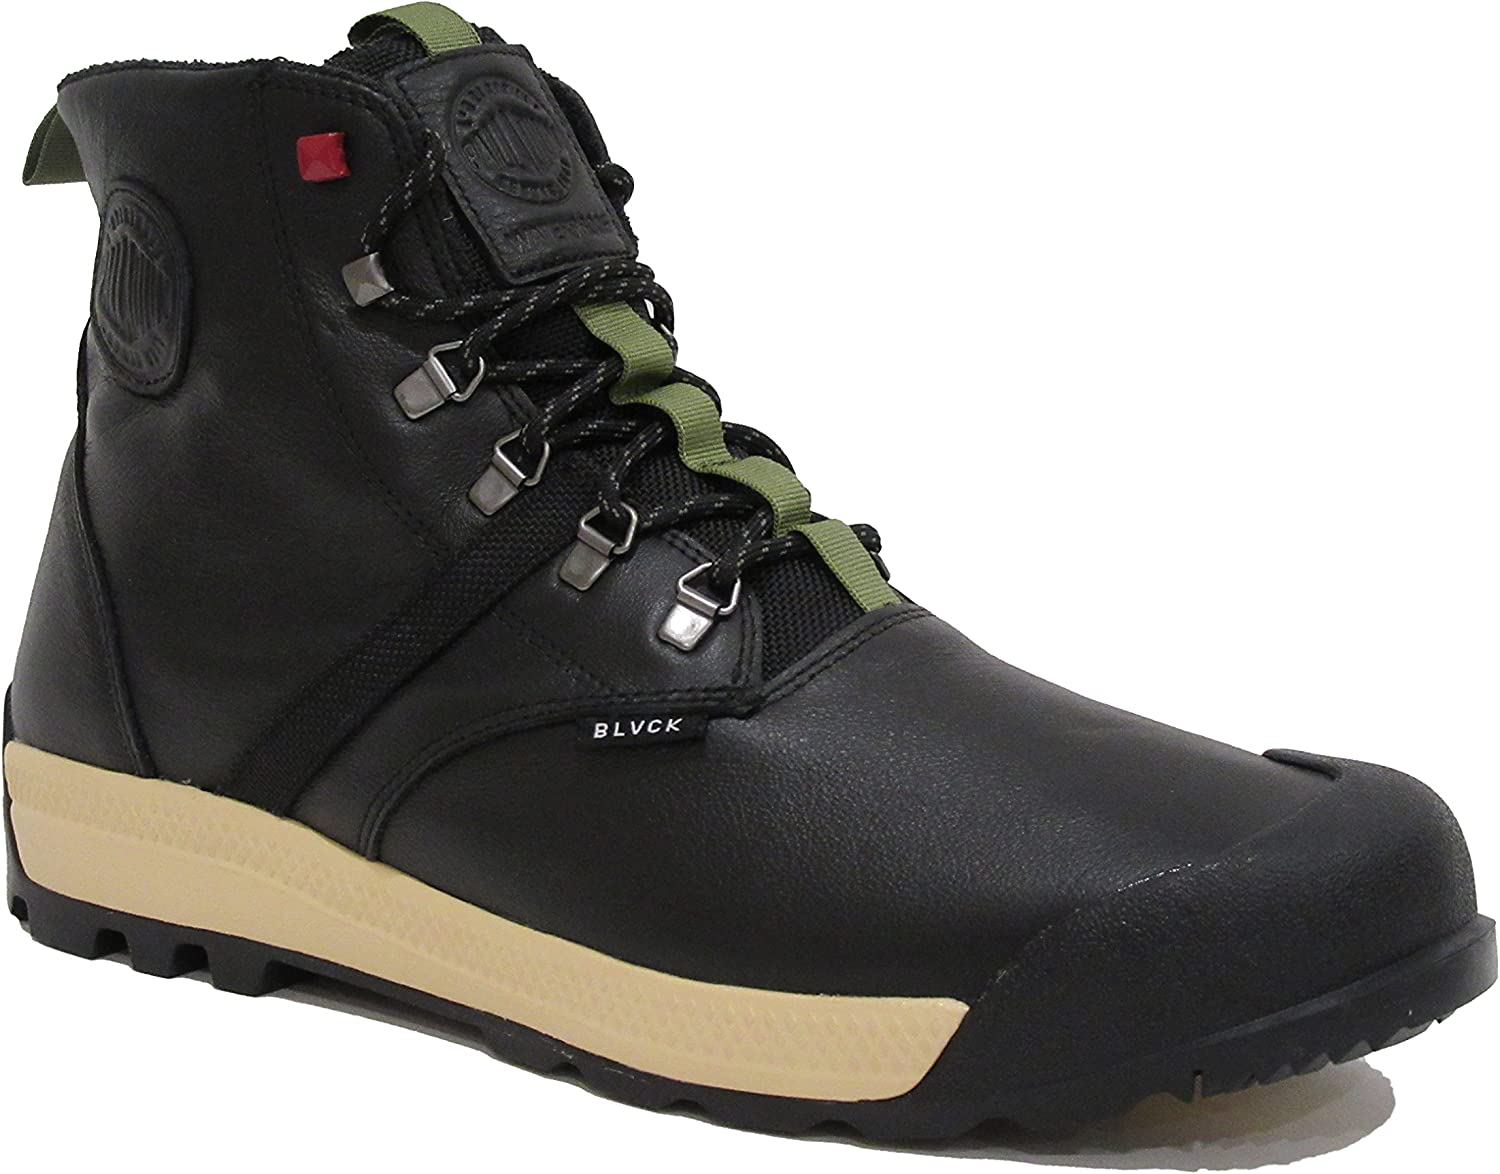 Palladium Men's Max 85% OFF PALLATECH Today's only HI WP LEA Boots